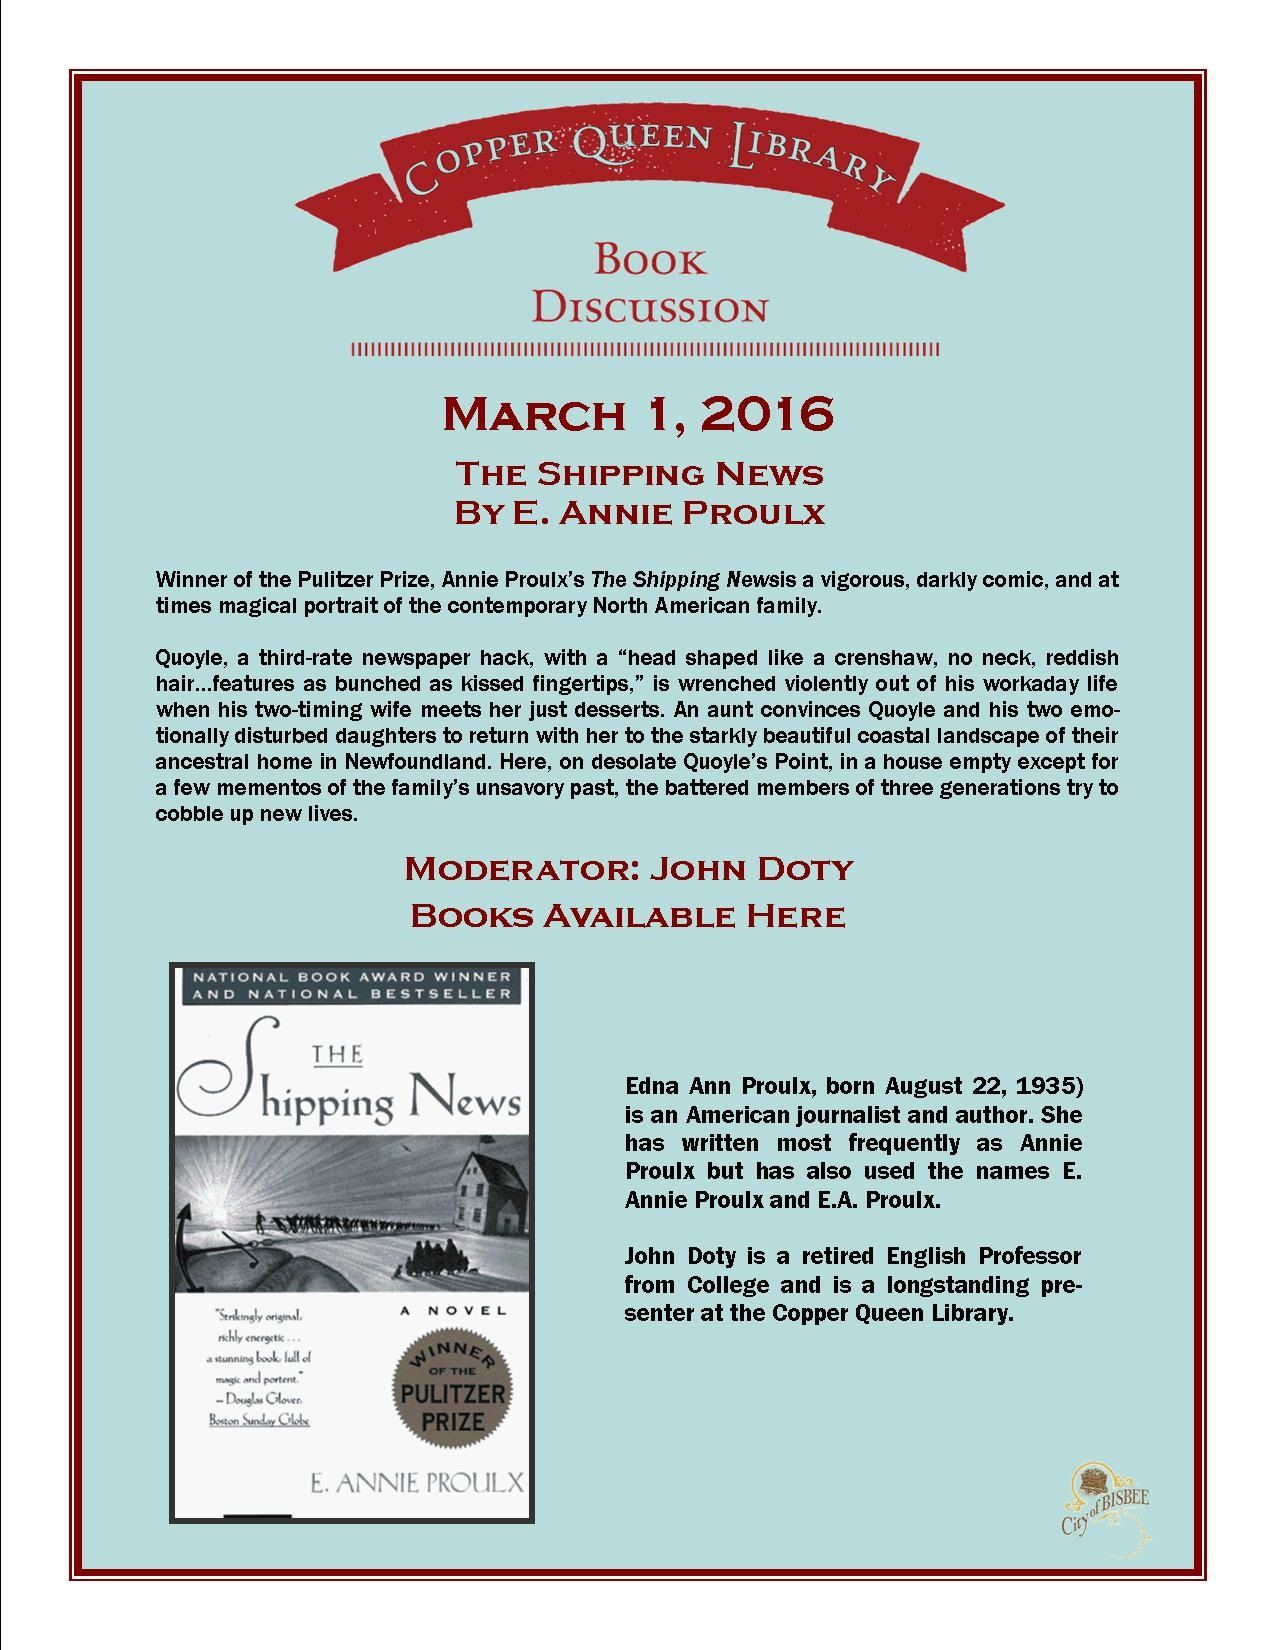 March 1 CQL BOOK DISCUSSION 8.5 x 11 3-1-2016